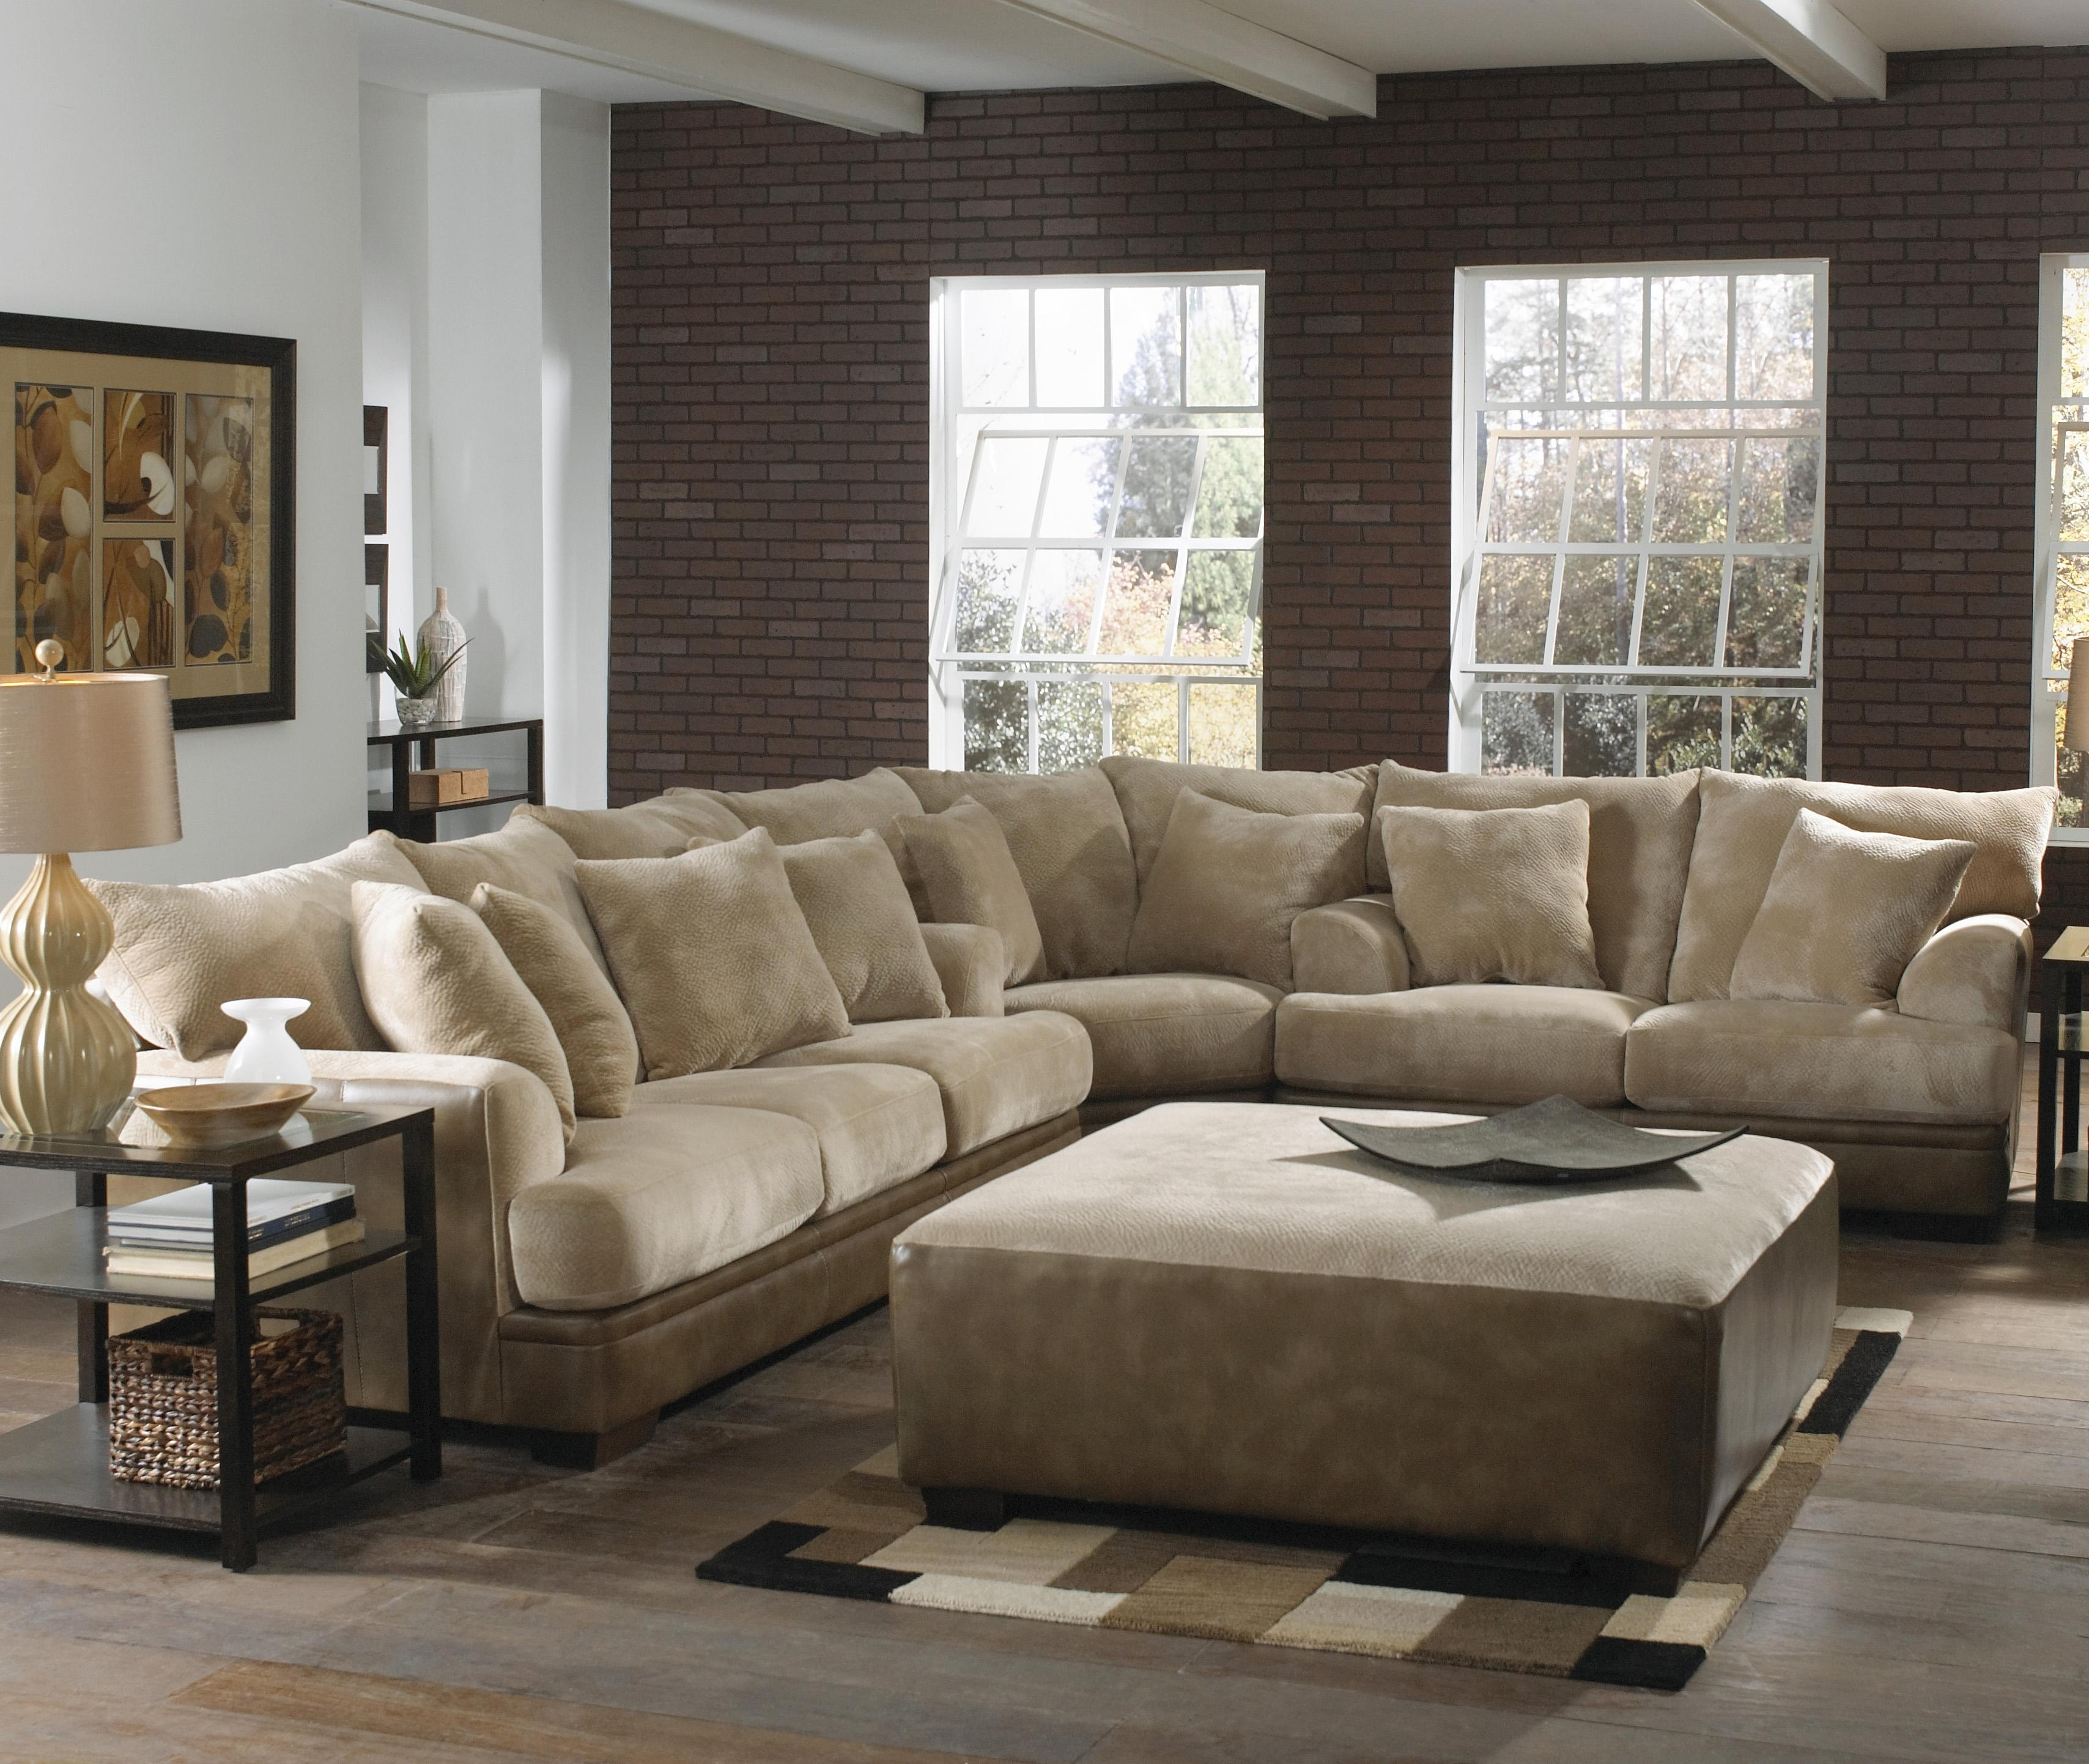 Widely Used Huge Sofas Inside Sofa Best Ideas Of Huge Sofas Oversized Sectional Sleeper Cheap (View 11 of 20)